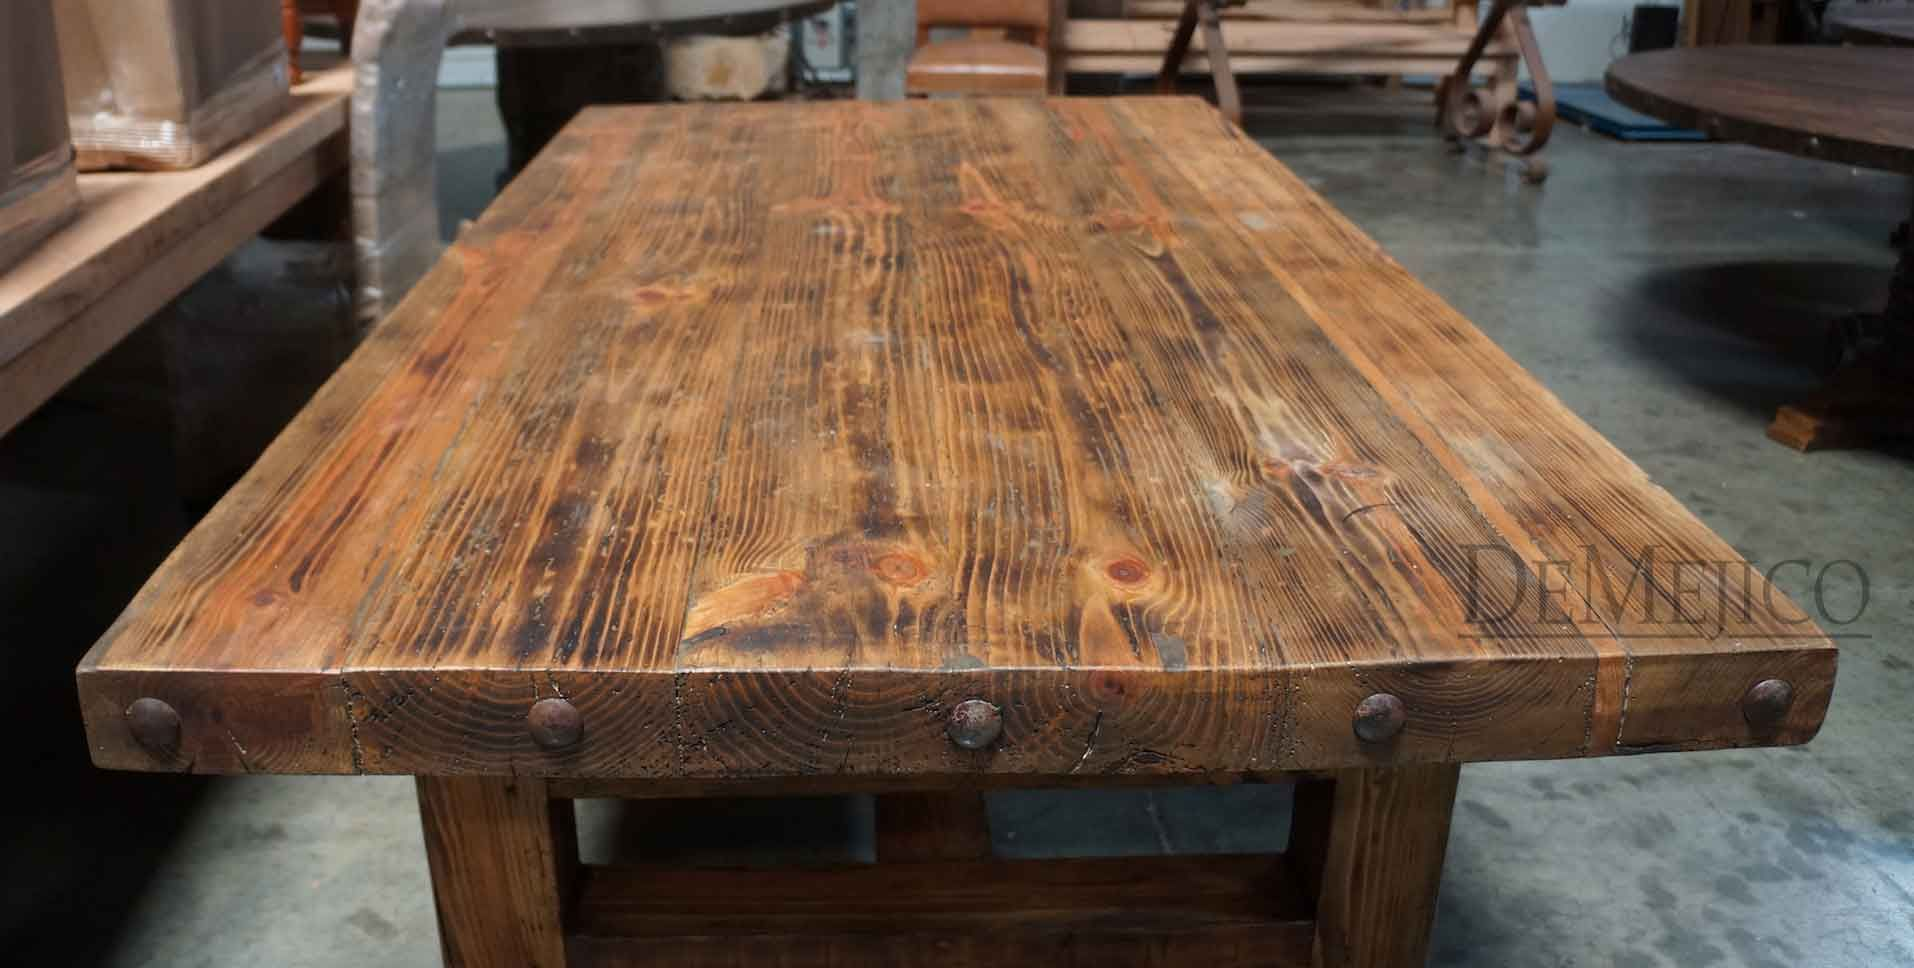 Woodworking Table Ideas Old Wood Table Demejicodemejico Wood Tables Floors